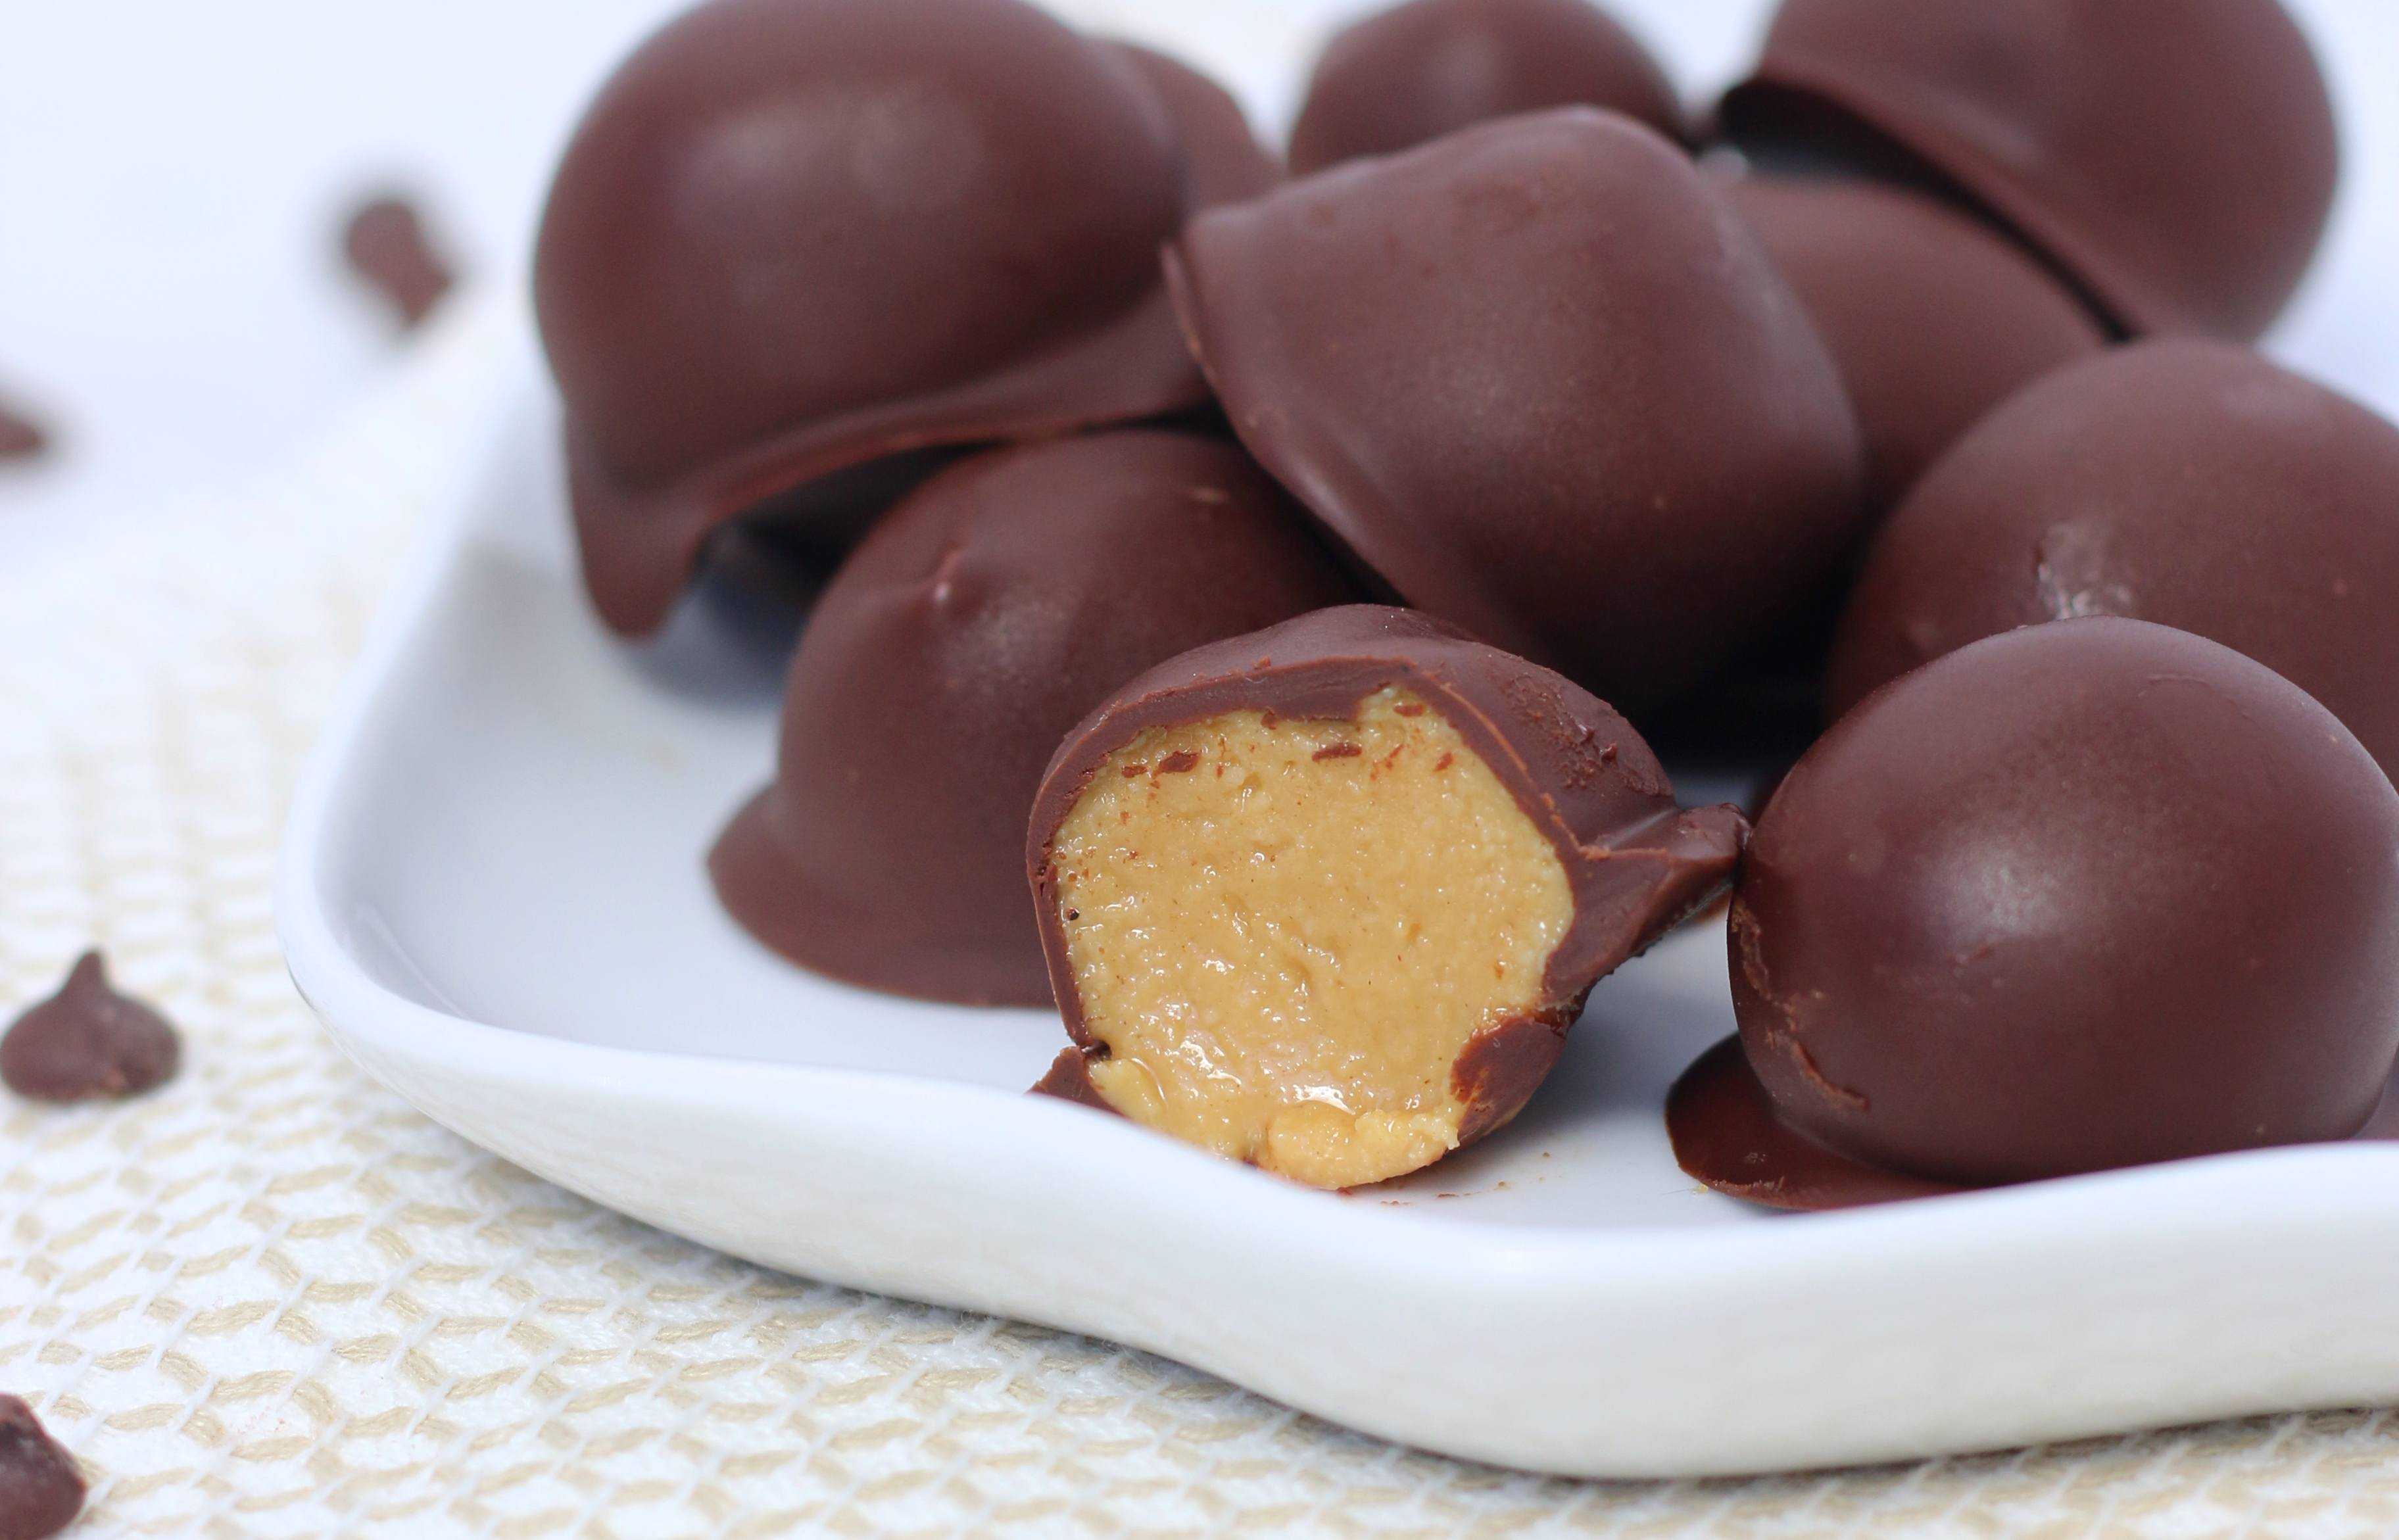 Recipe for keto peanut butter bites are similar to peanut butter cups and will satisfy any sweet tooth.